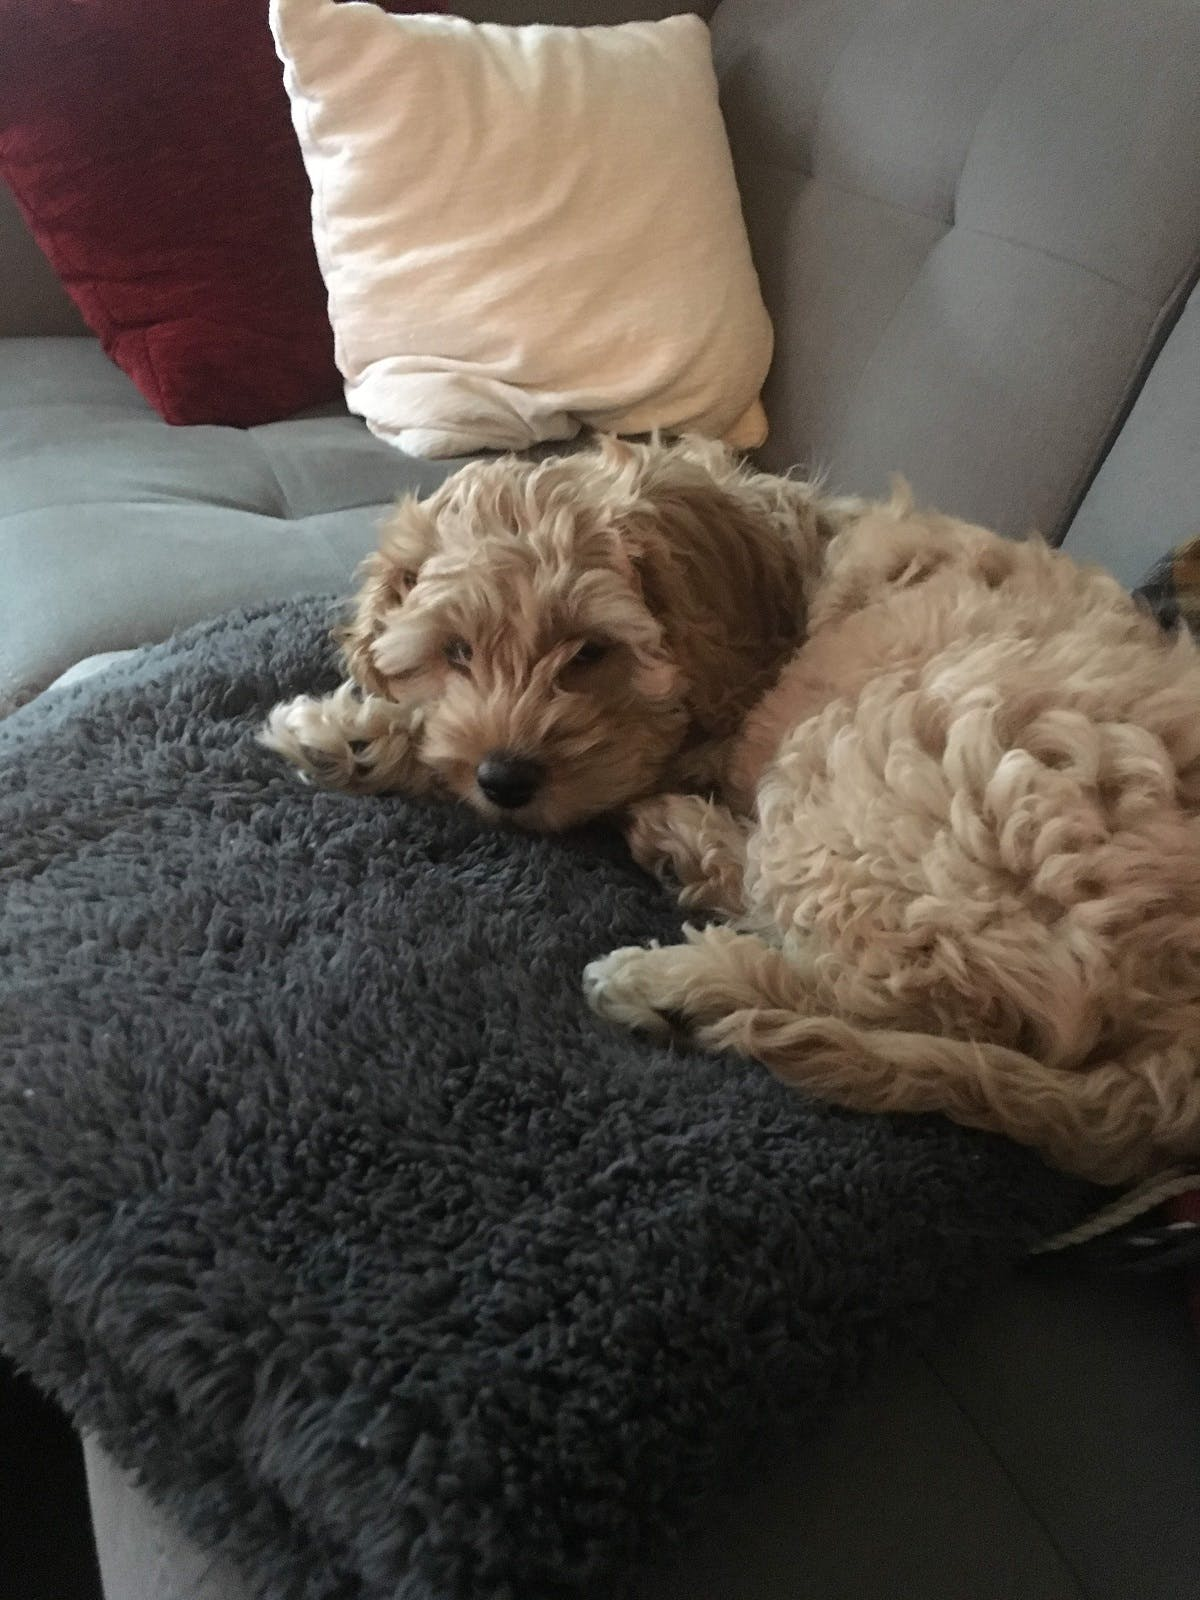 Penny the puppy snoozes on the couch